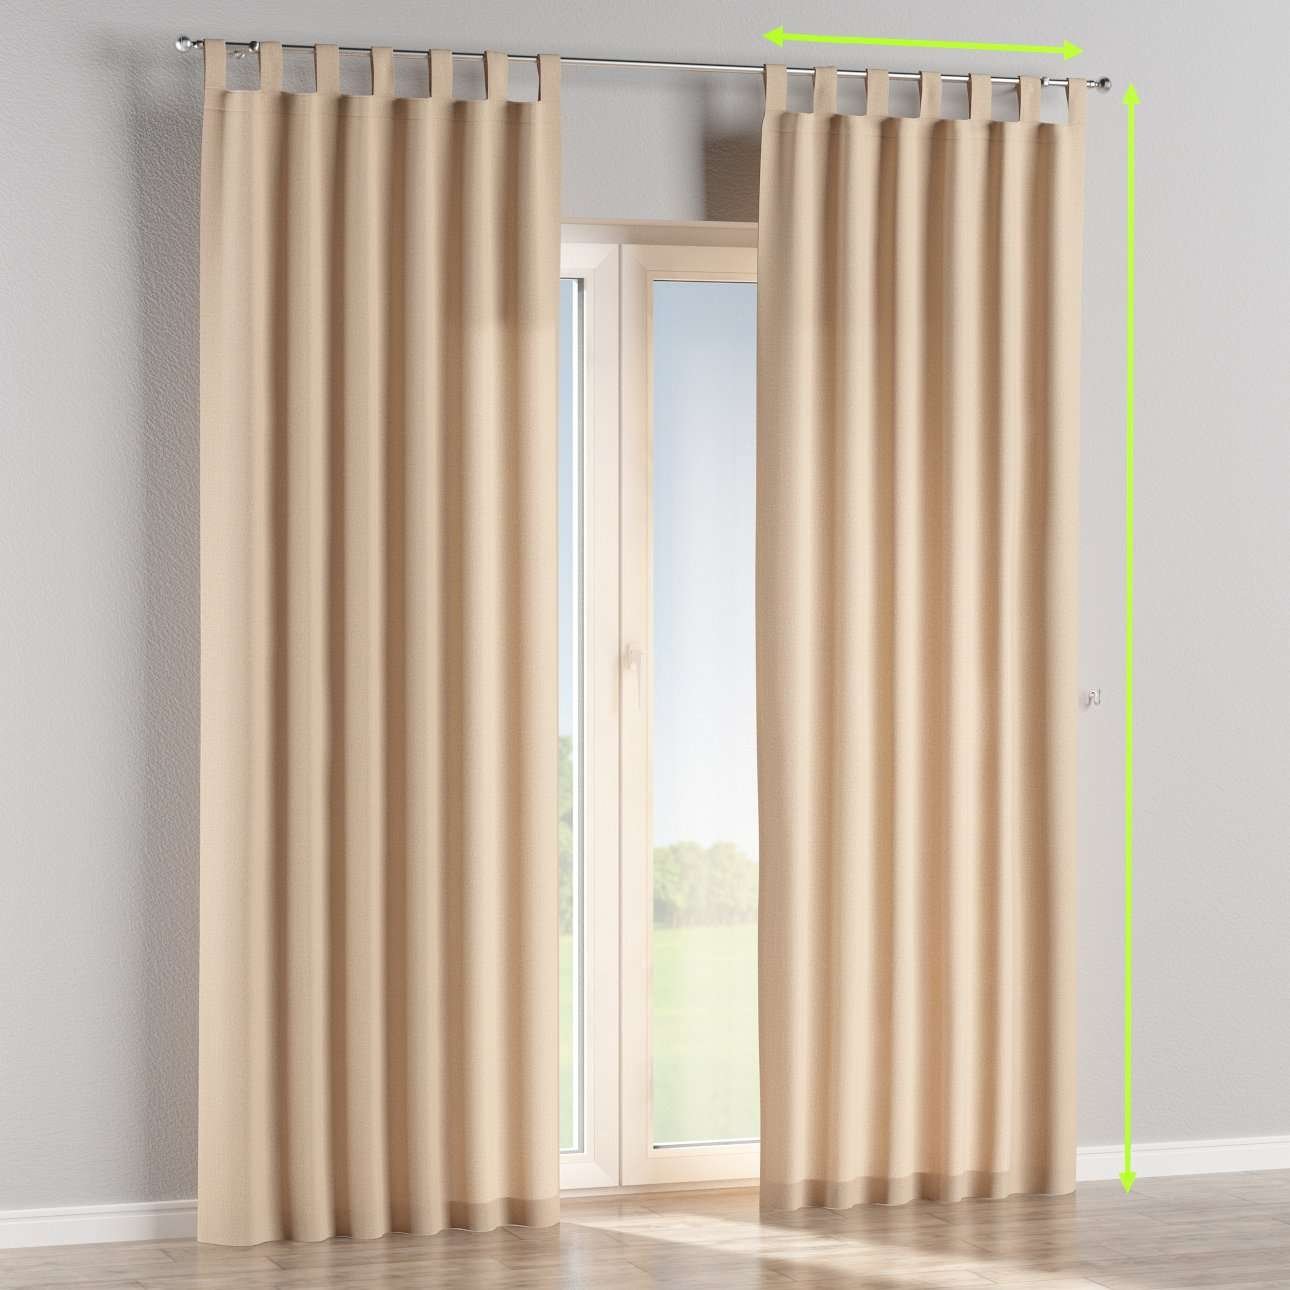 Tab top lined curtains in collection Edinburgh, fabric: 115-78